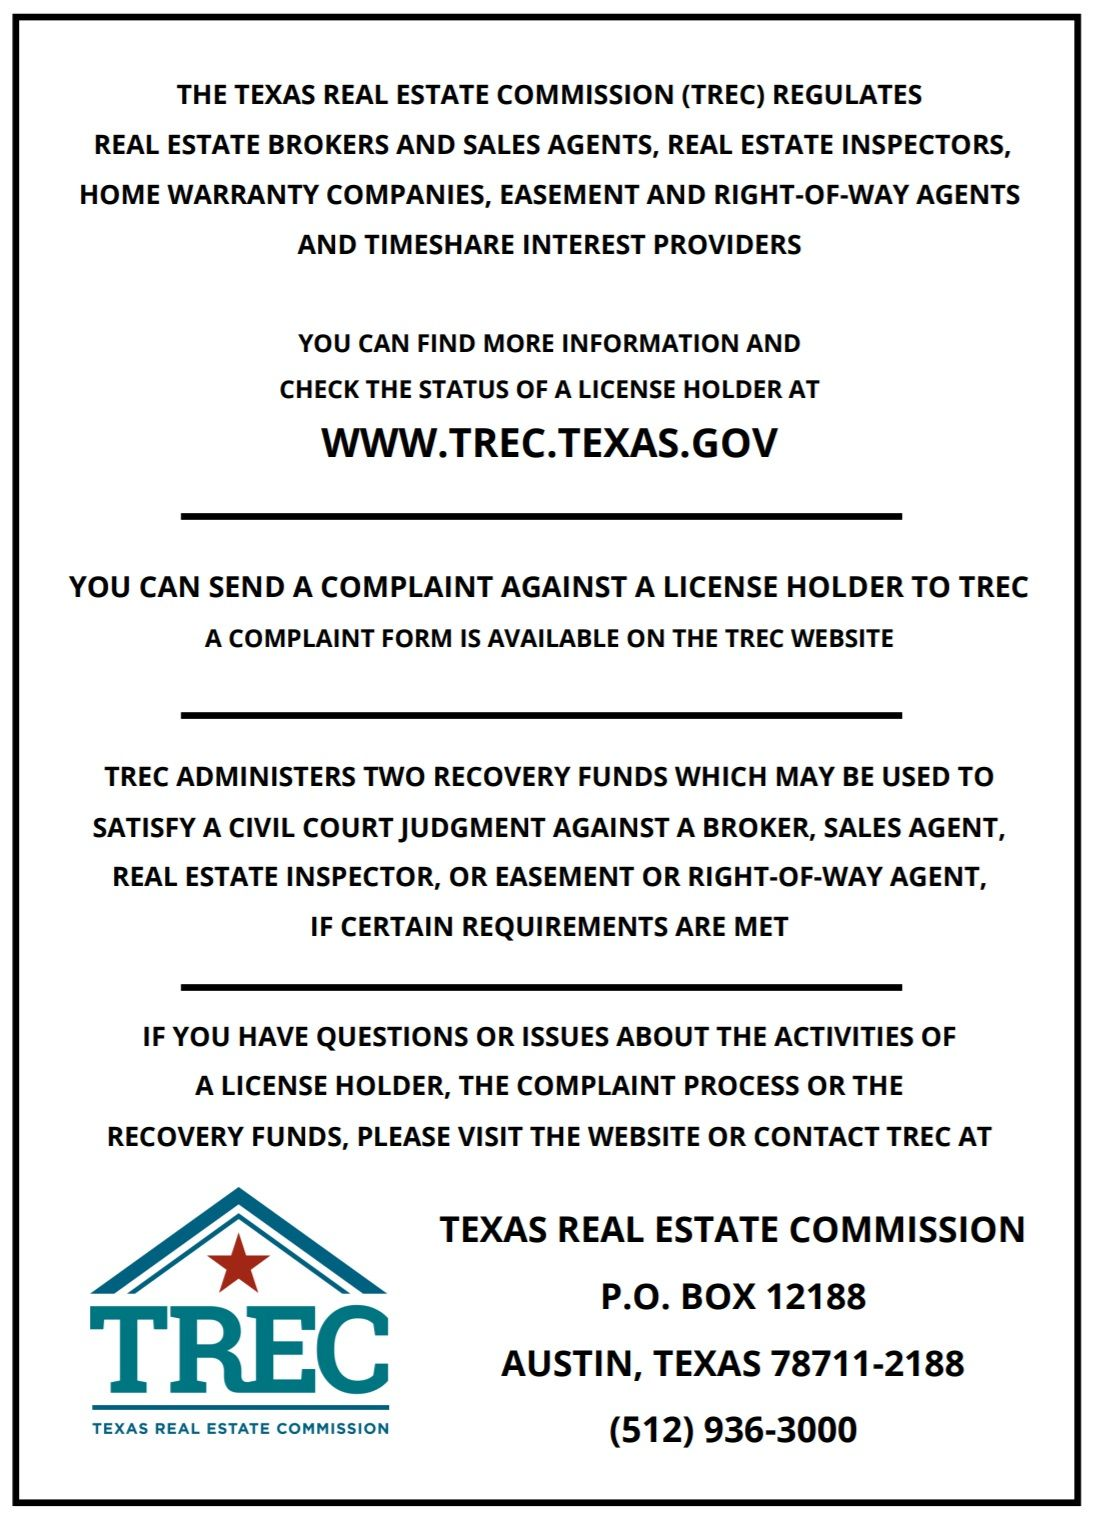 Trec Legal Texas Real Estate Consumer Protection Real Estate Information